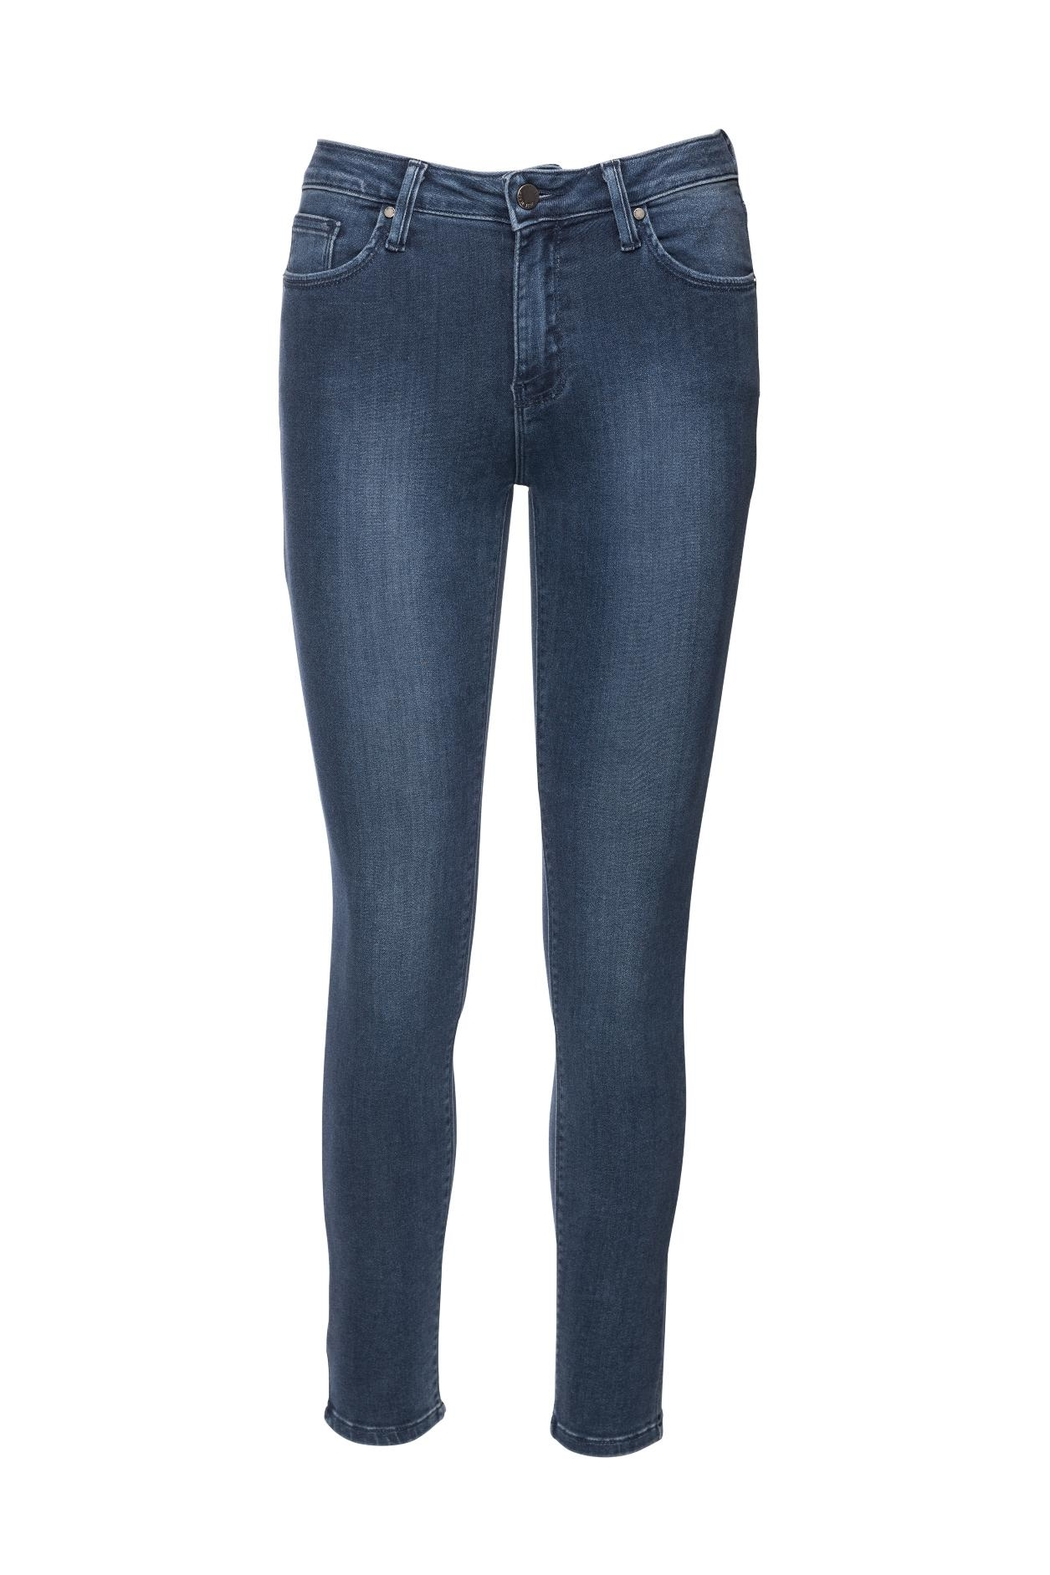 just black Ankle Skinny Denim Jeans - Front Cropped Image